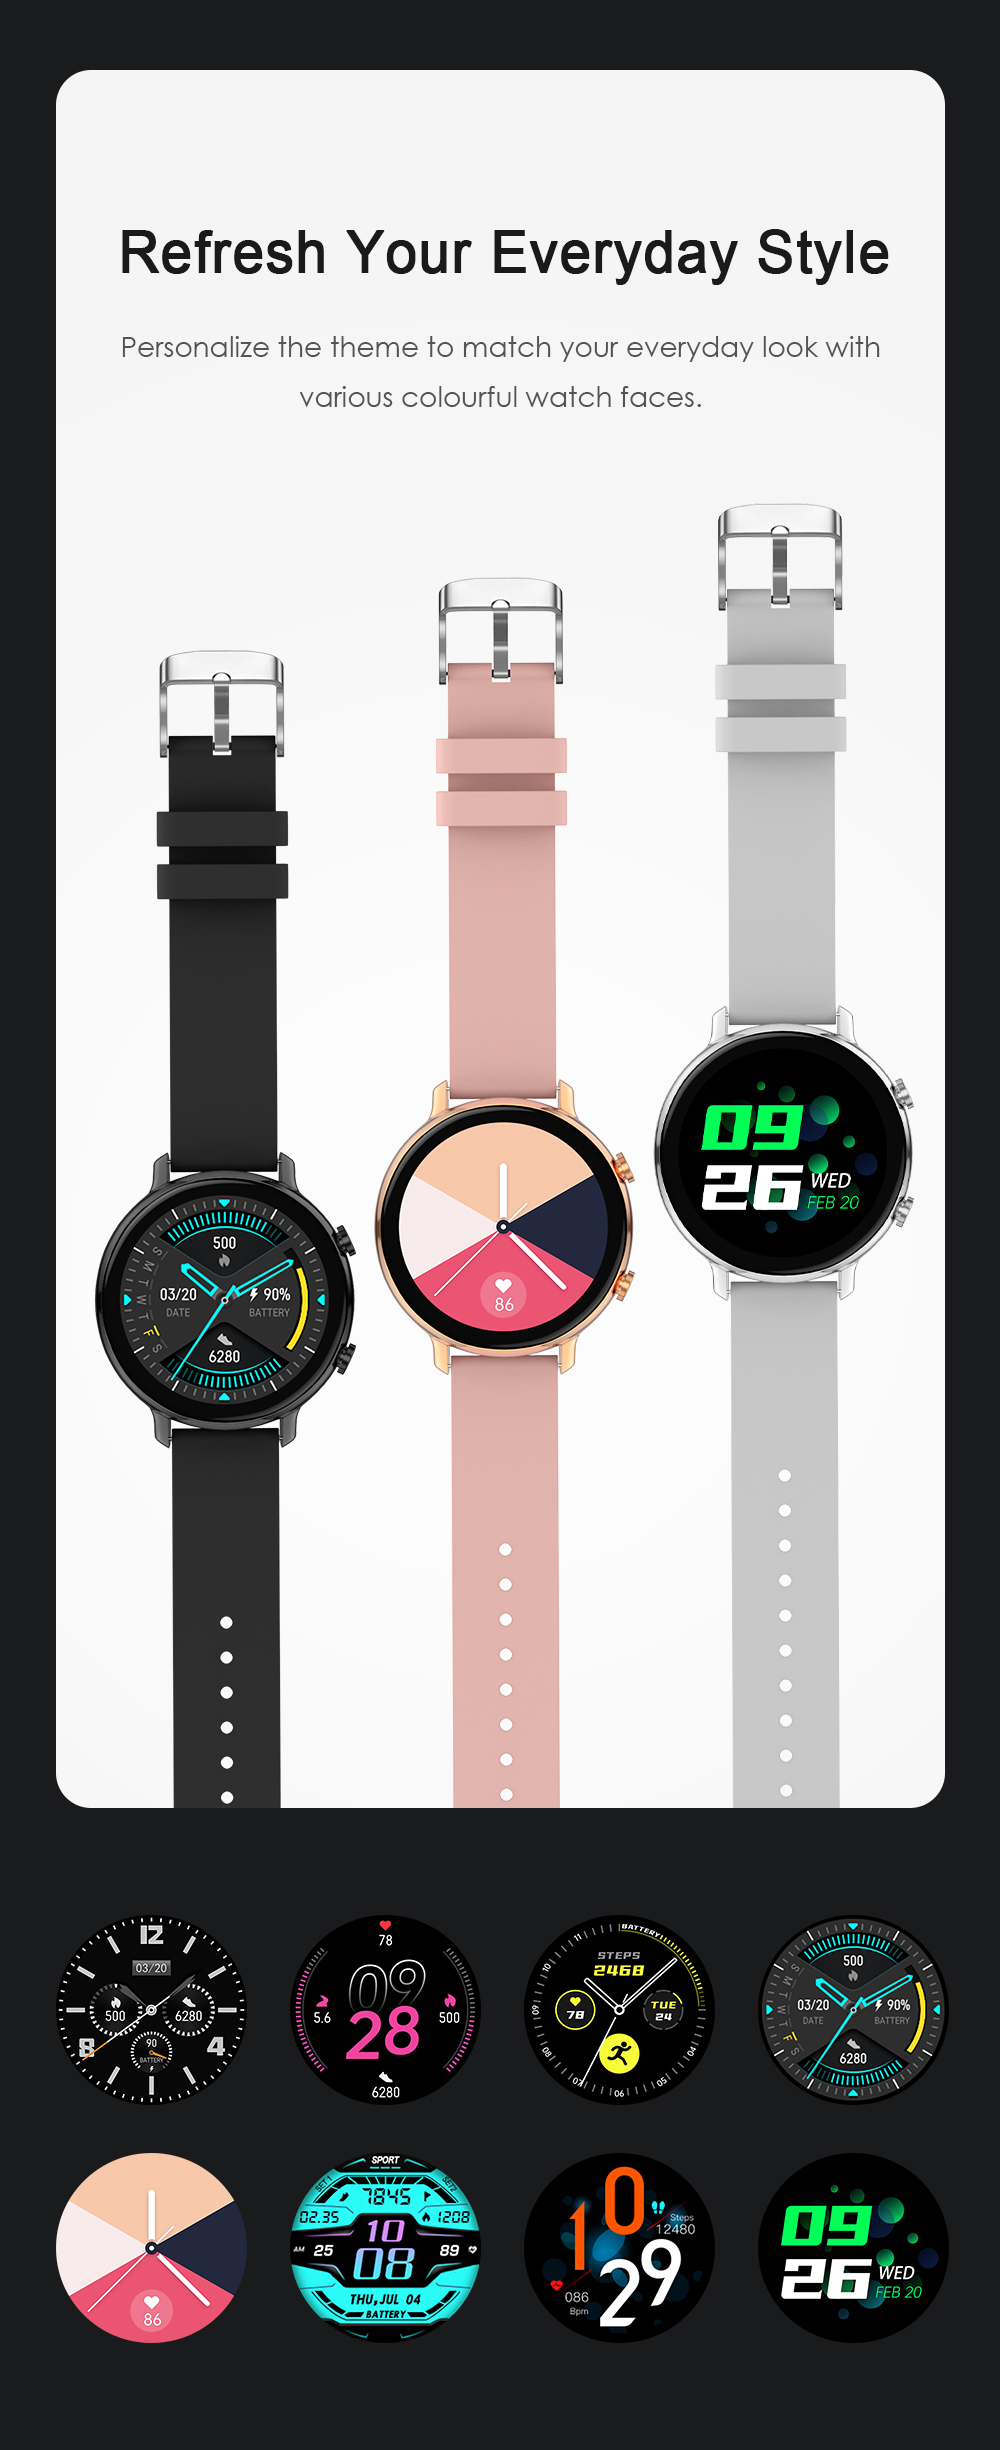 H1df77a281d2d4e2f8a3c40a1eb0847fam SANLEPUS ECG PPG Smart Watch With Dial Calls 2021 New Men Women Smartwatch Blood Pressure Monitor For Android Samsung Apple